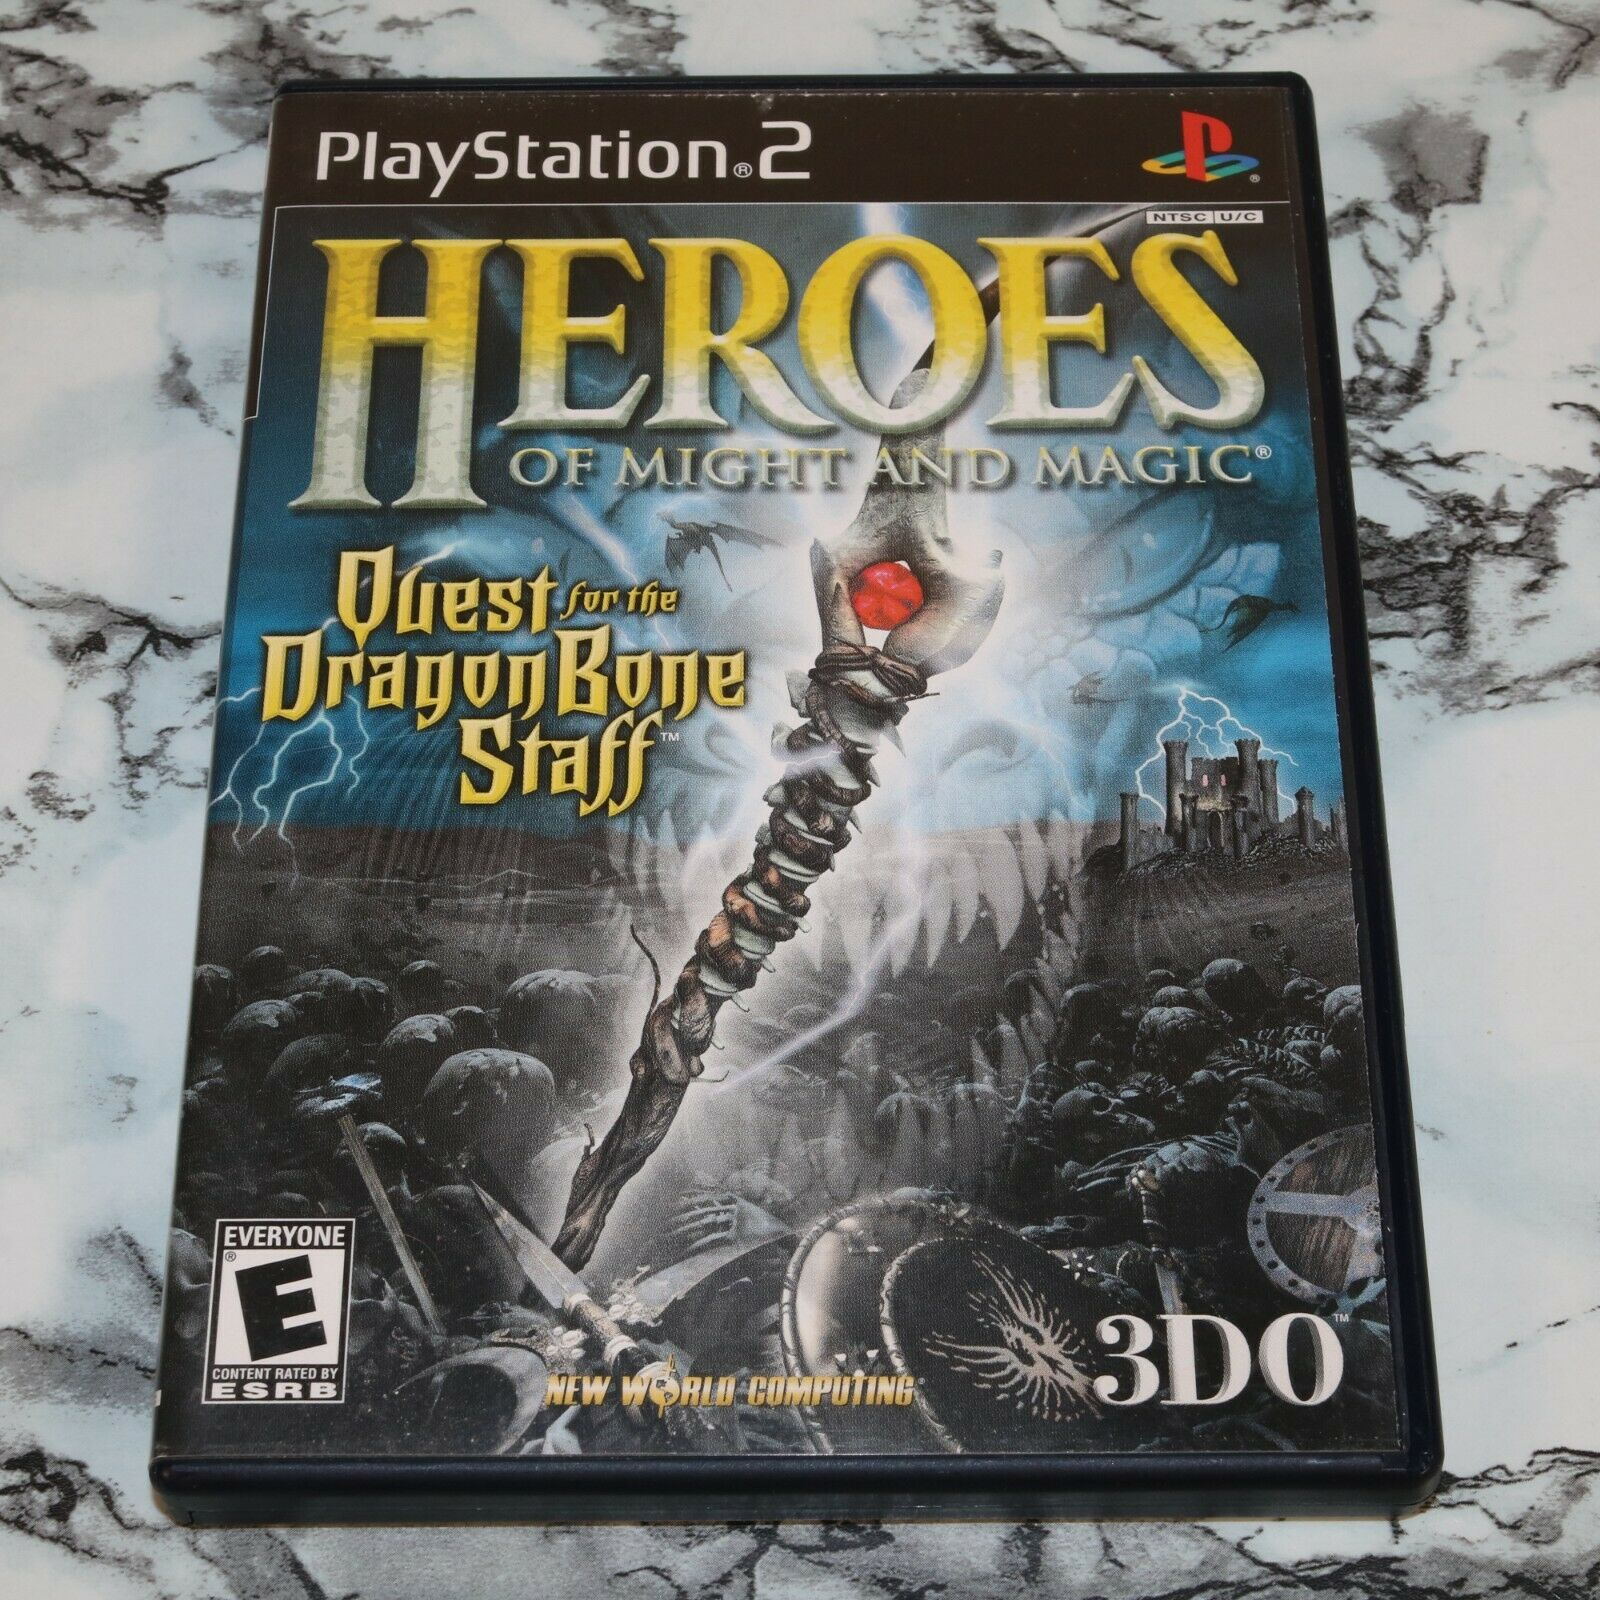 Heroes Of Might And Magic - Quest For The Dragon Bone Staff Sony PlayStation 2  - $11.18